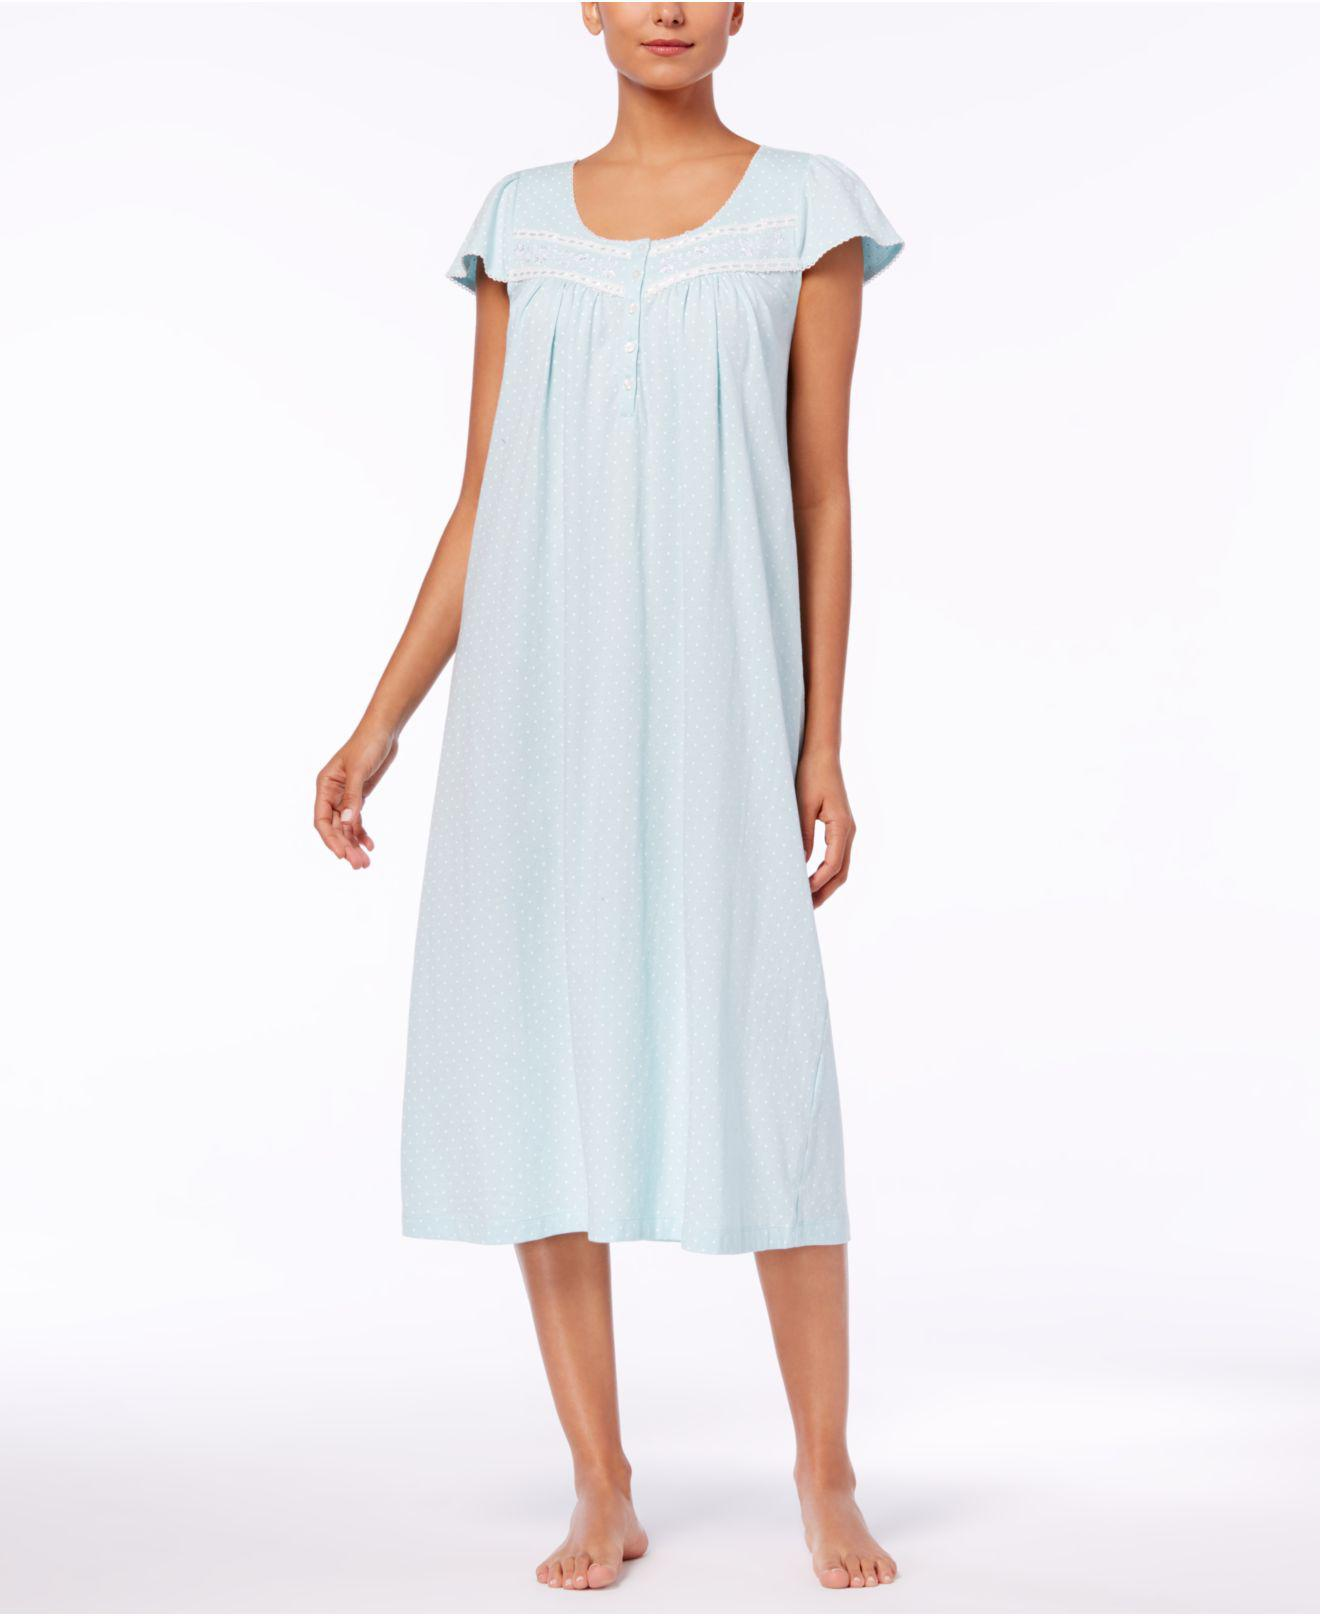 The precursor to the modern-day nightgowns for women is the chemise, the 30% Off Classic Brands· Free Shipping Over $70· Bra Size Calculator· + Brand Names9,+ followers on Twitter.